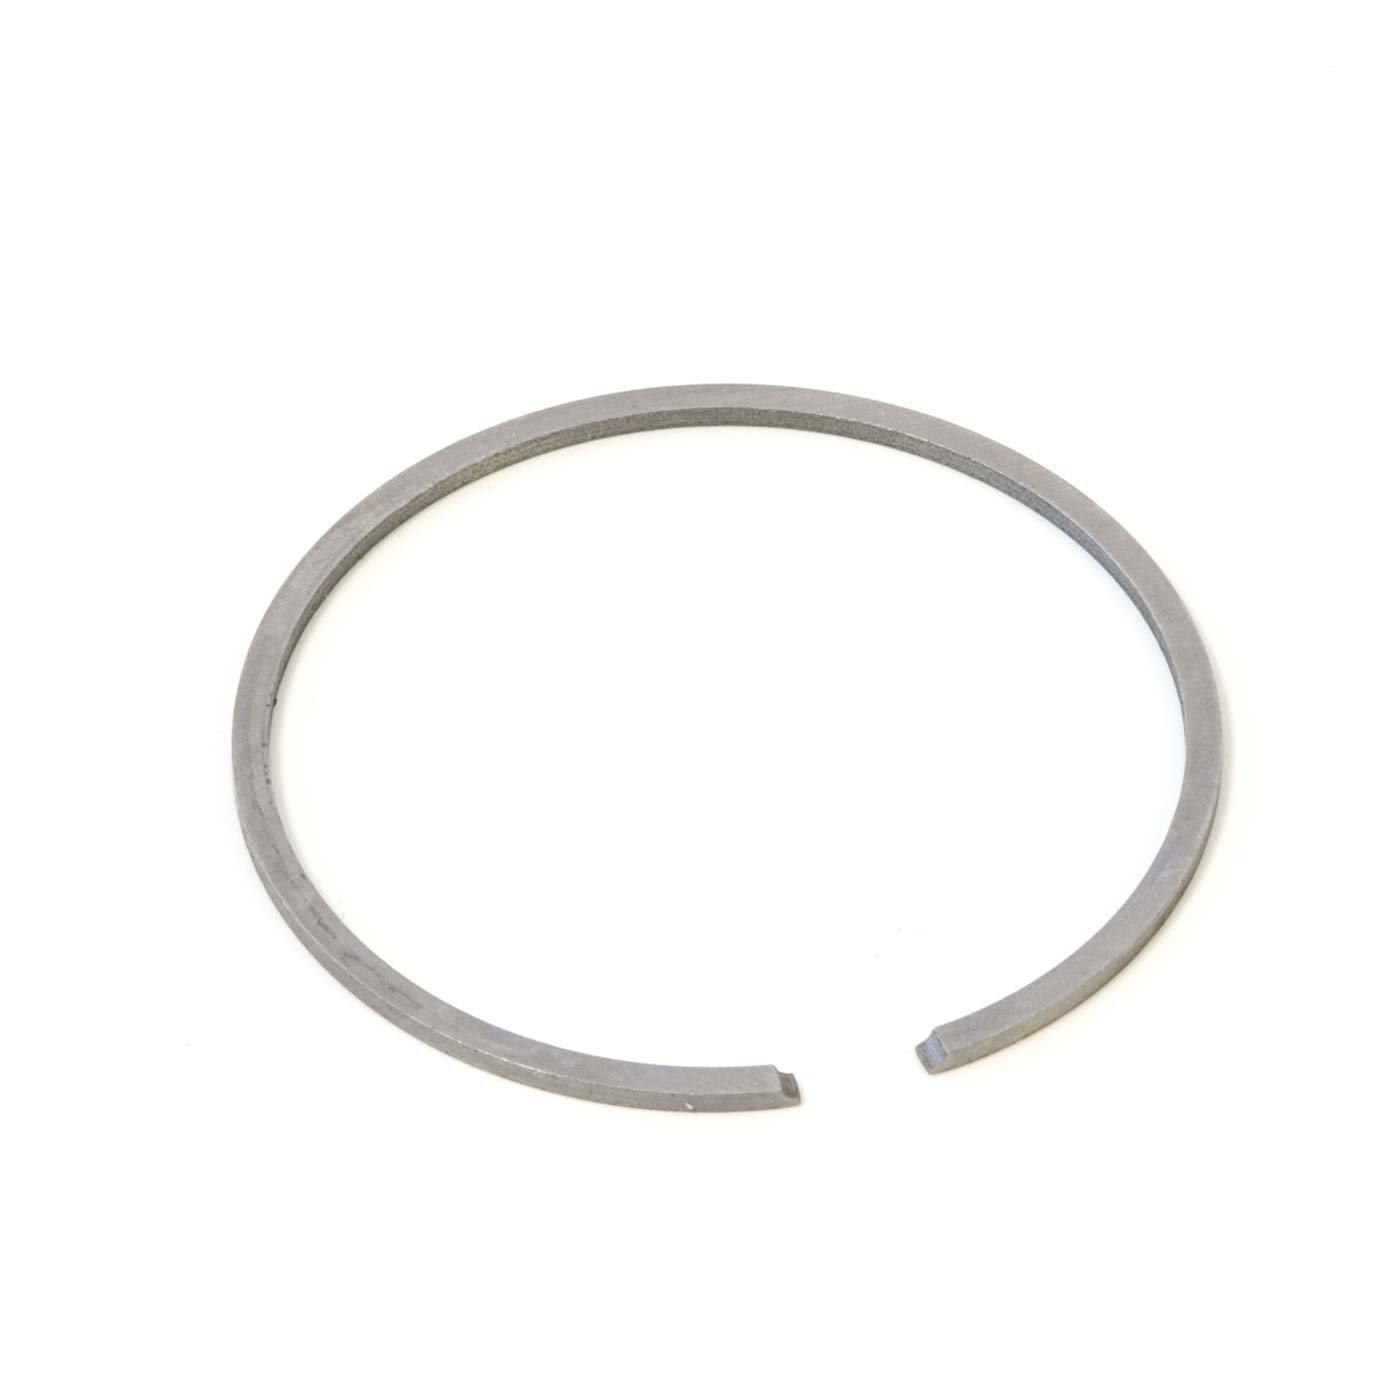 Piston ring for DLE-20 RA